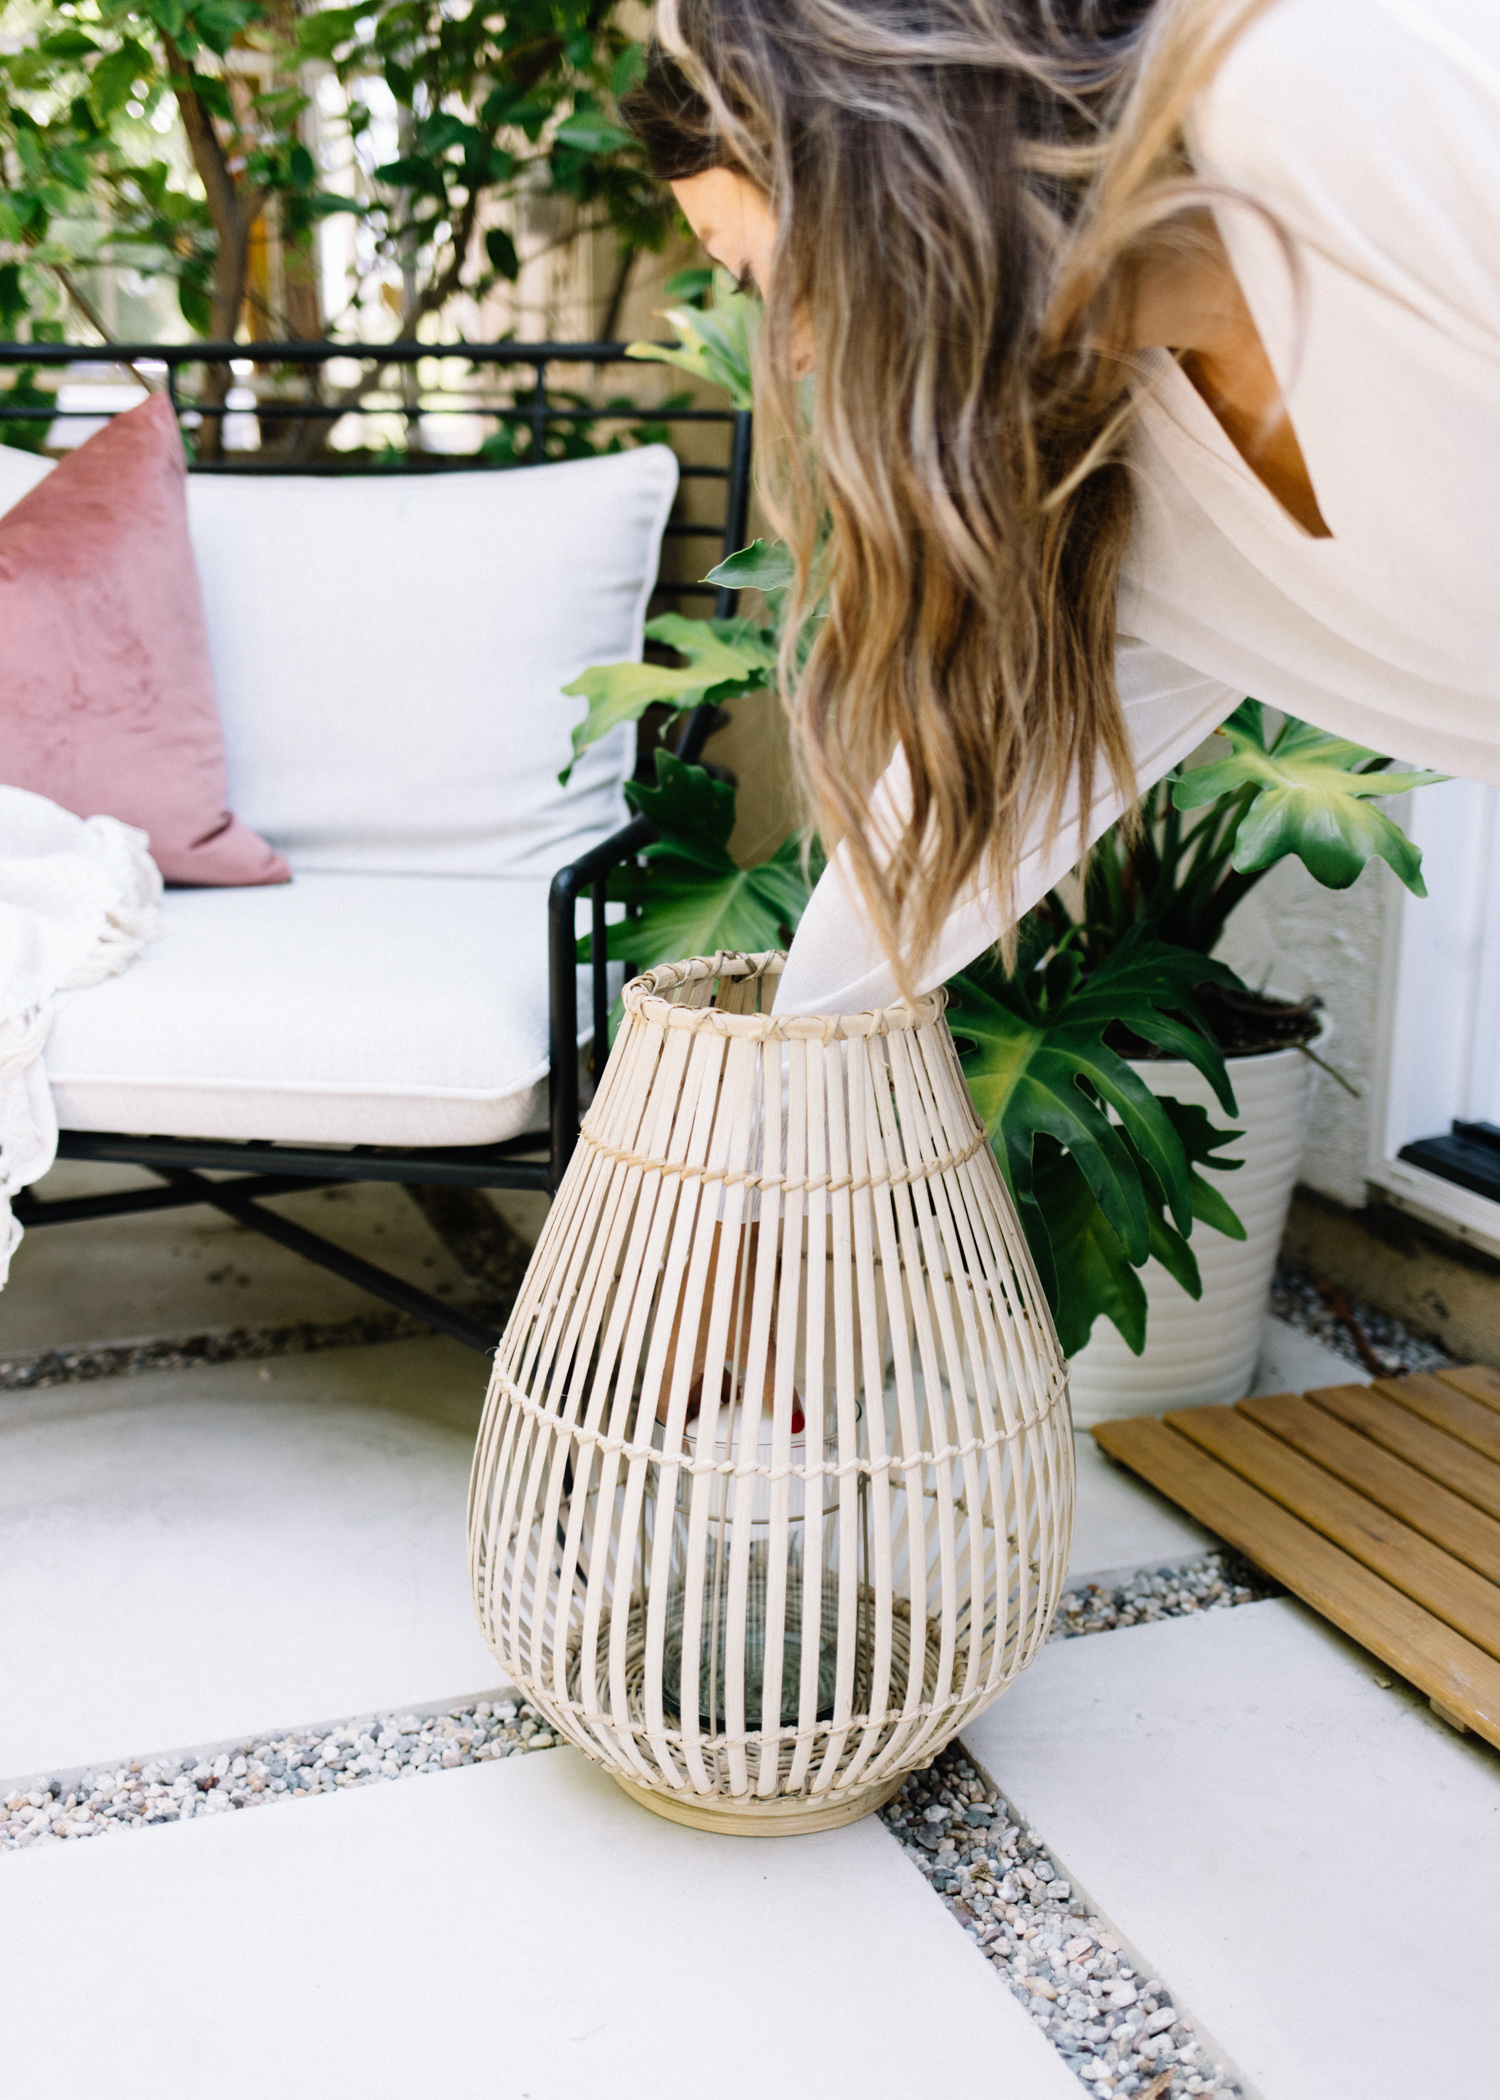 5 Accessories You Need To Update An Outdoor Space | A Fabulous Fete